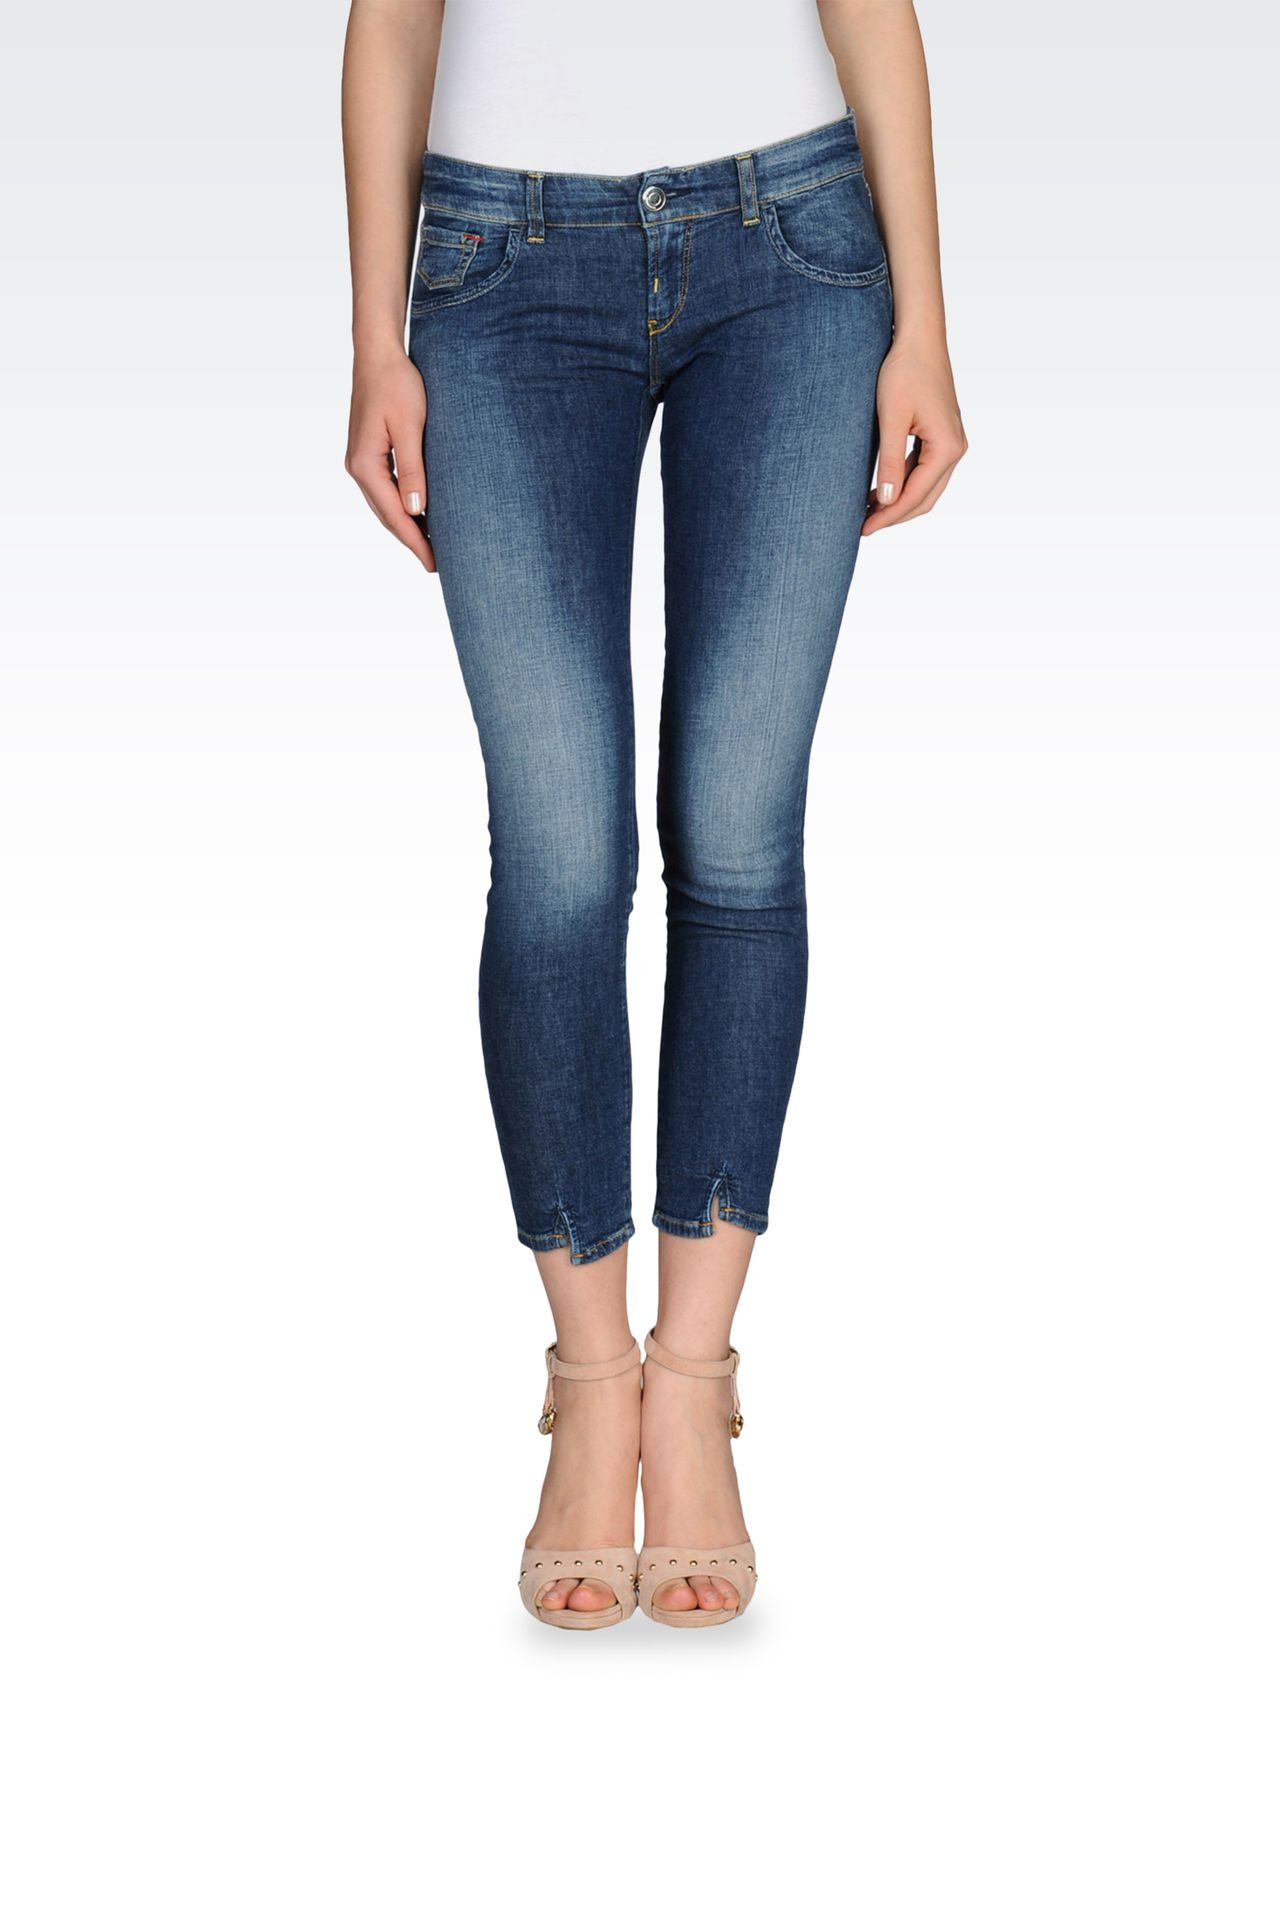 SLIM FIT JEANS IN LIGHT STRETCH DENIM: Jeans Women by Armani - 0